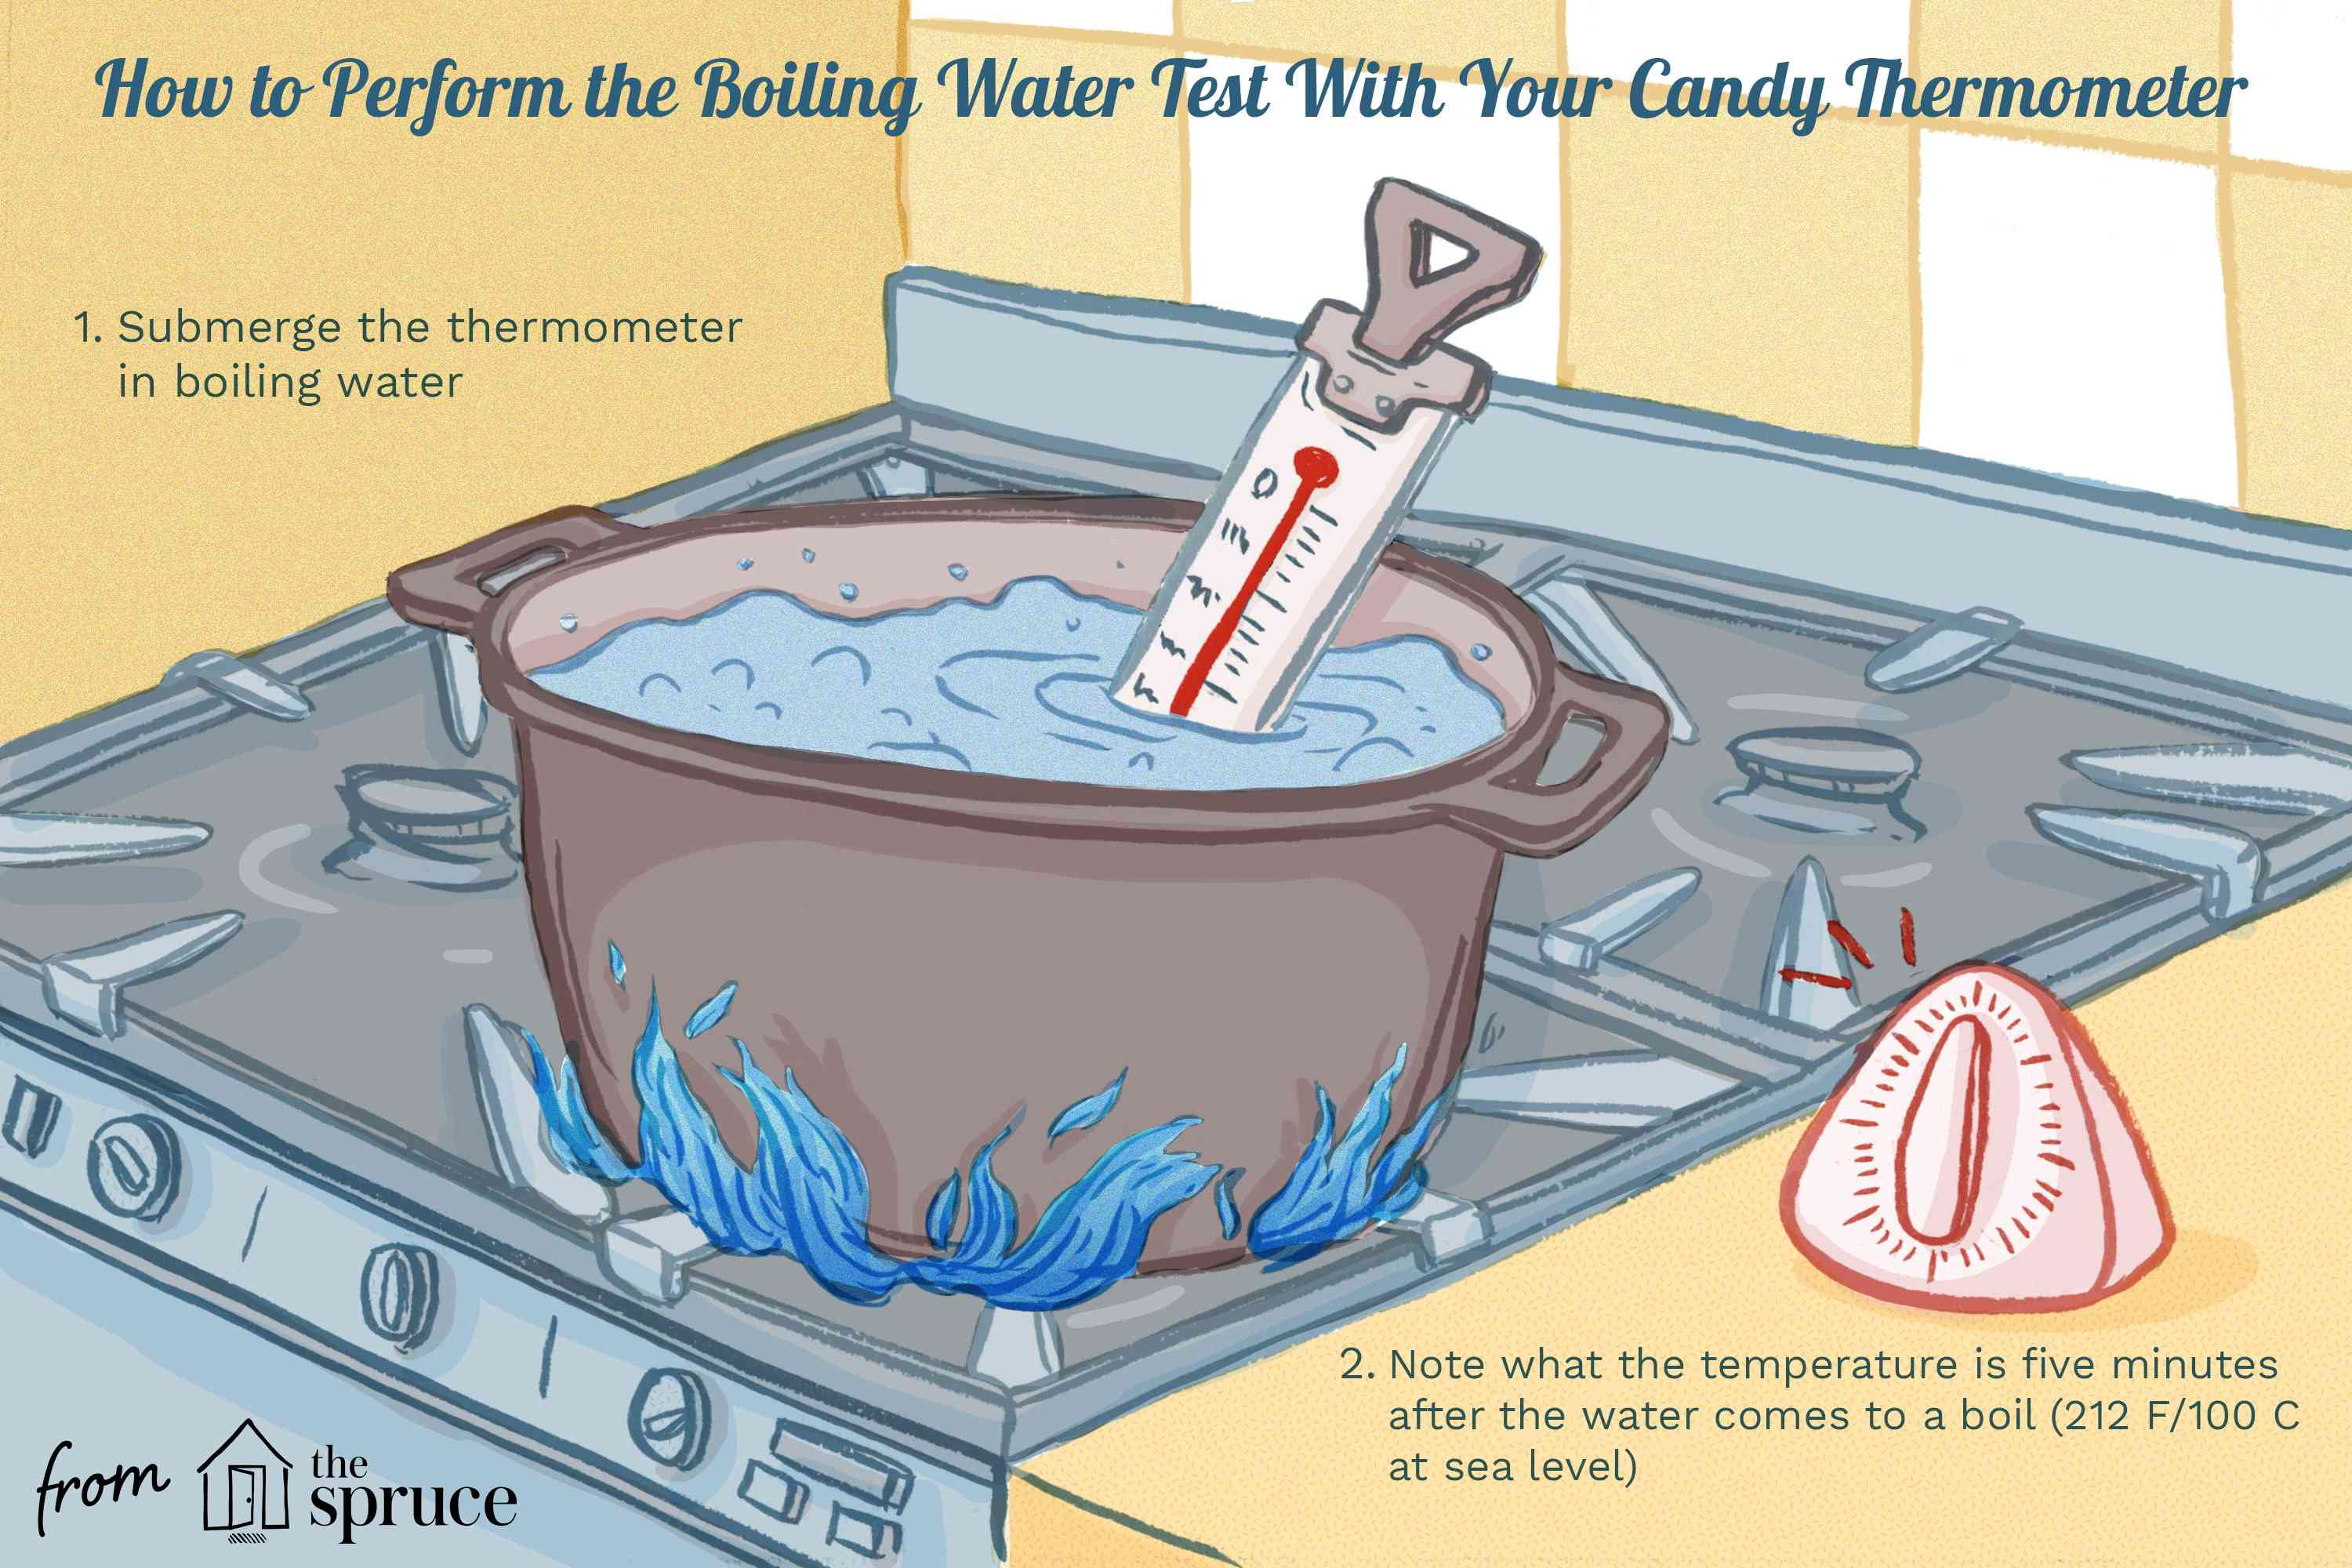 how to perform boiling water test with candy thermometer